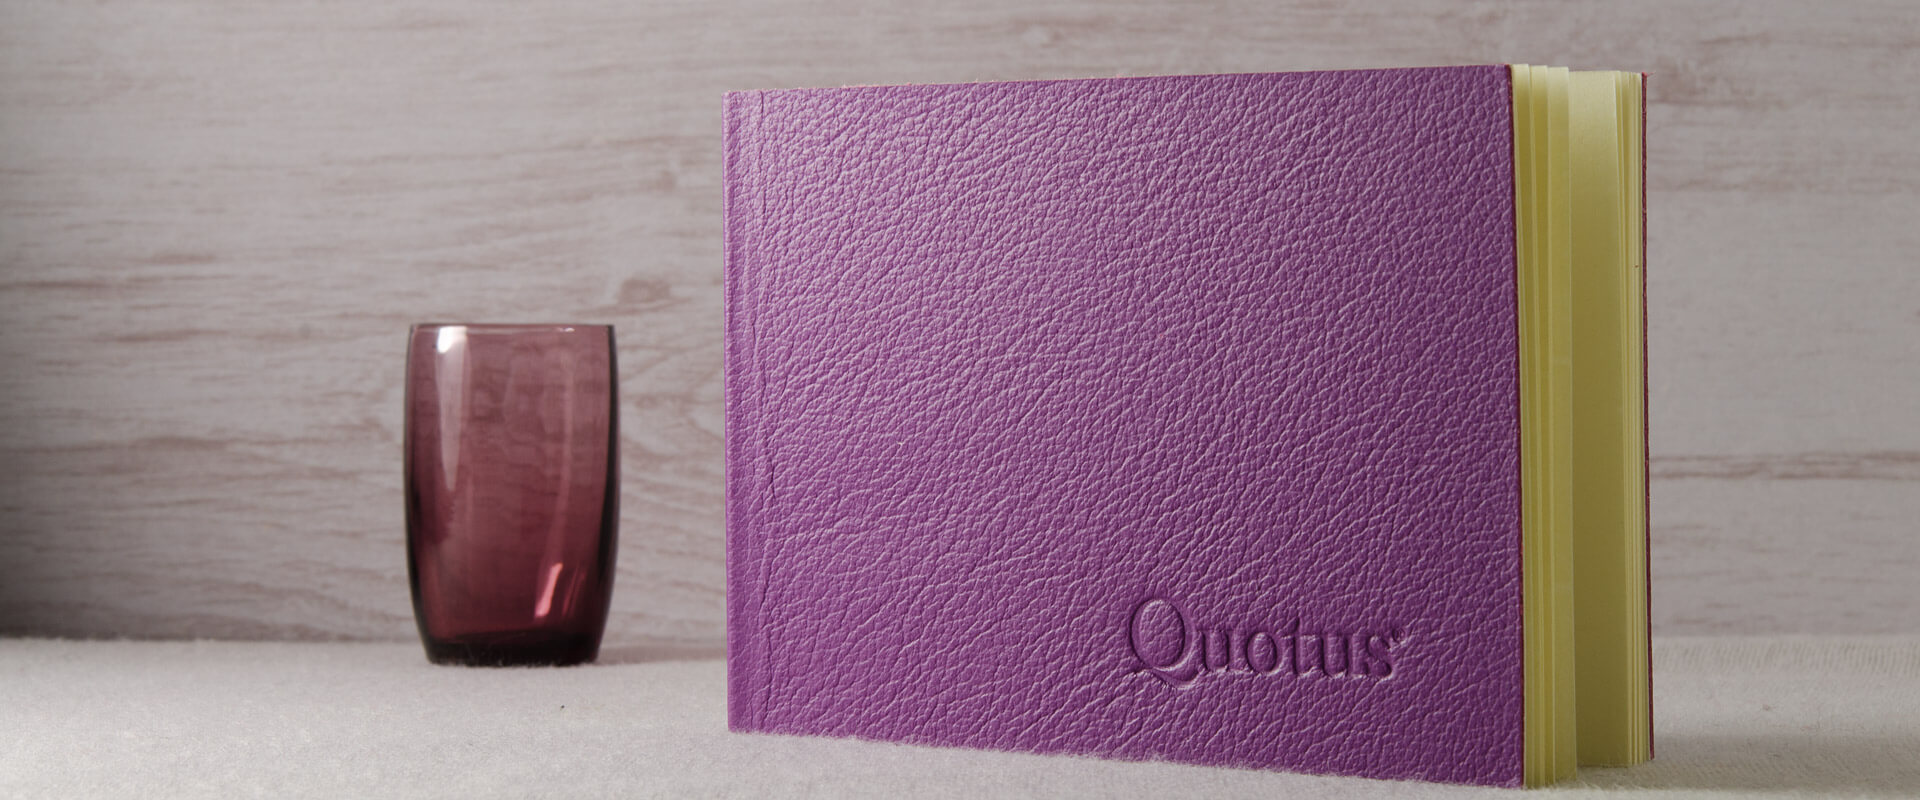 Cartoleria Quotus - Mini Block Notes Pavra viola, a righe